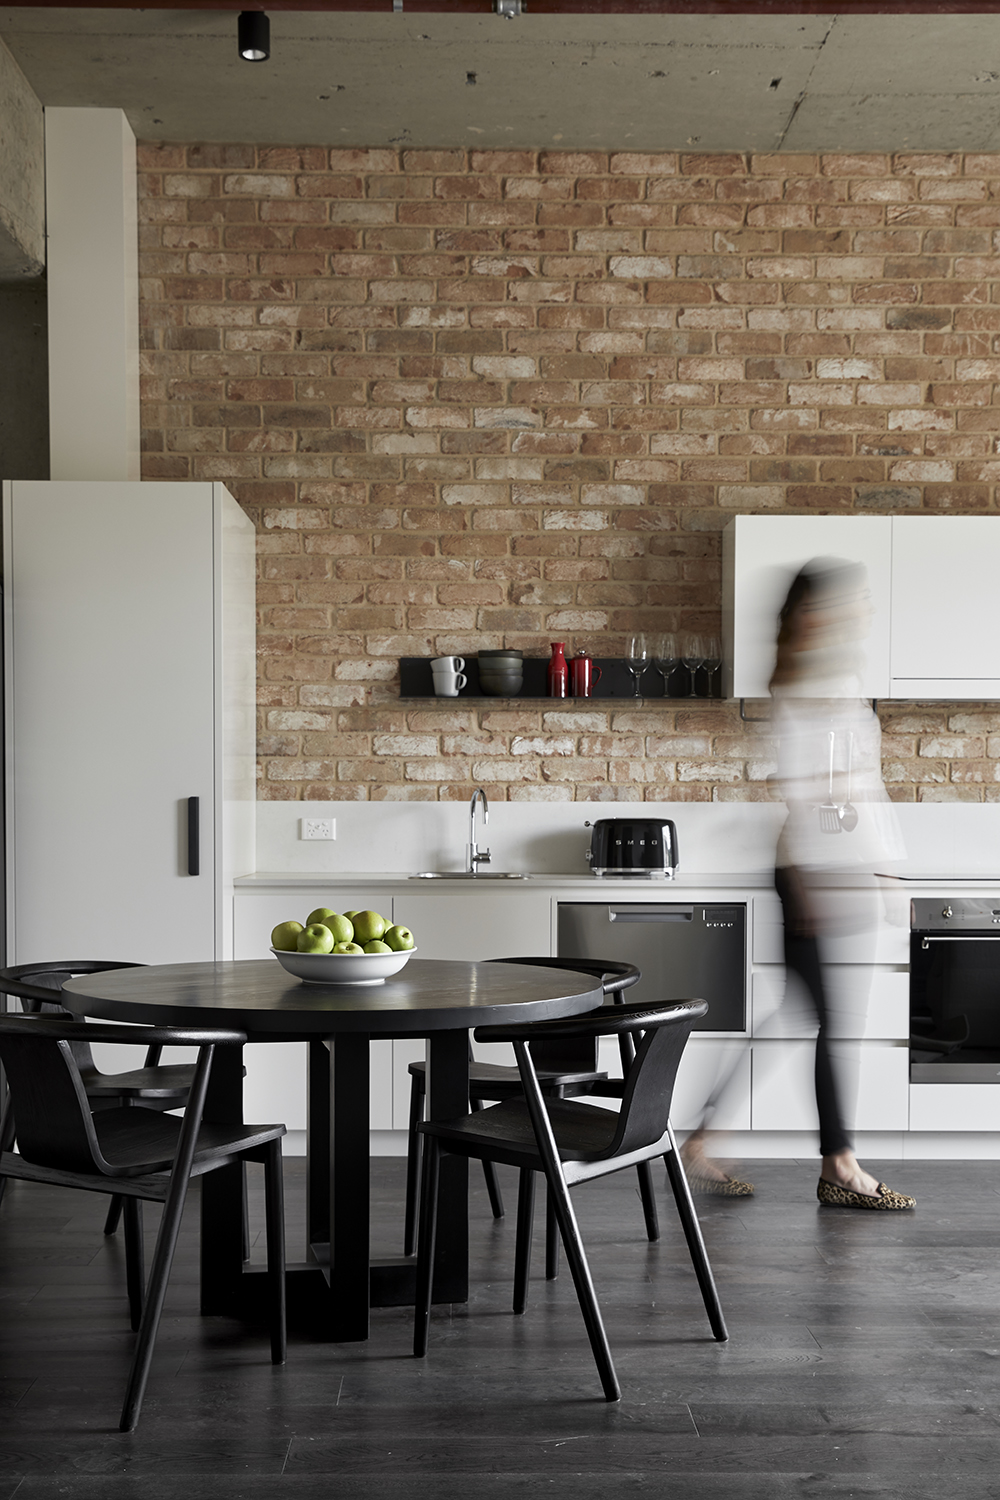 interior photography of new development A+A Woden by Canberra photographer